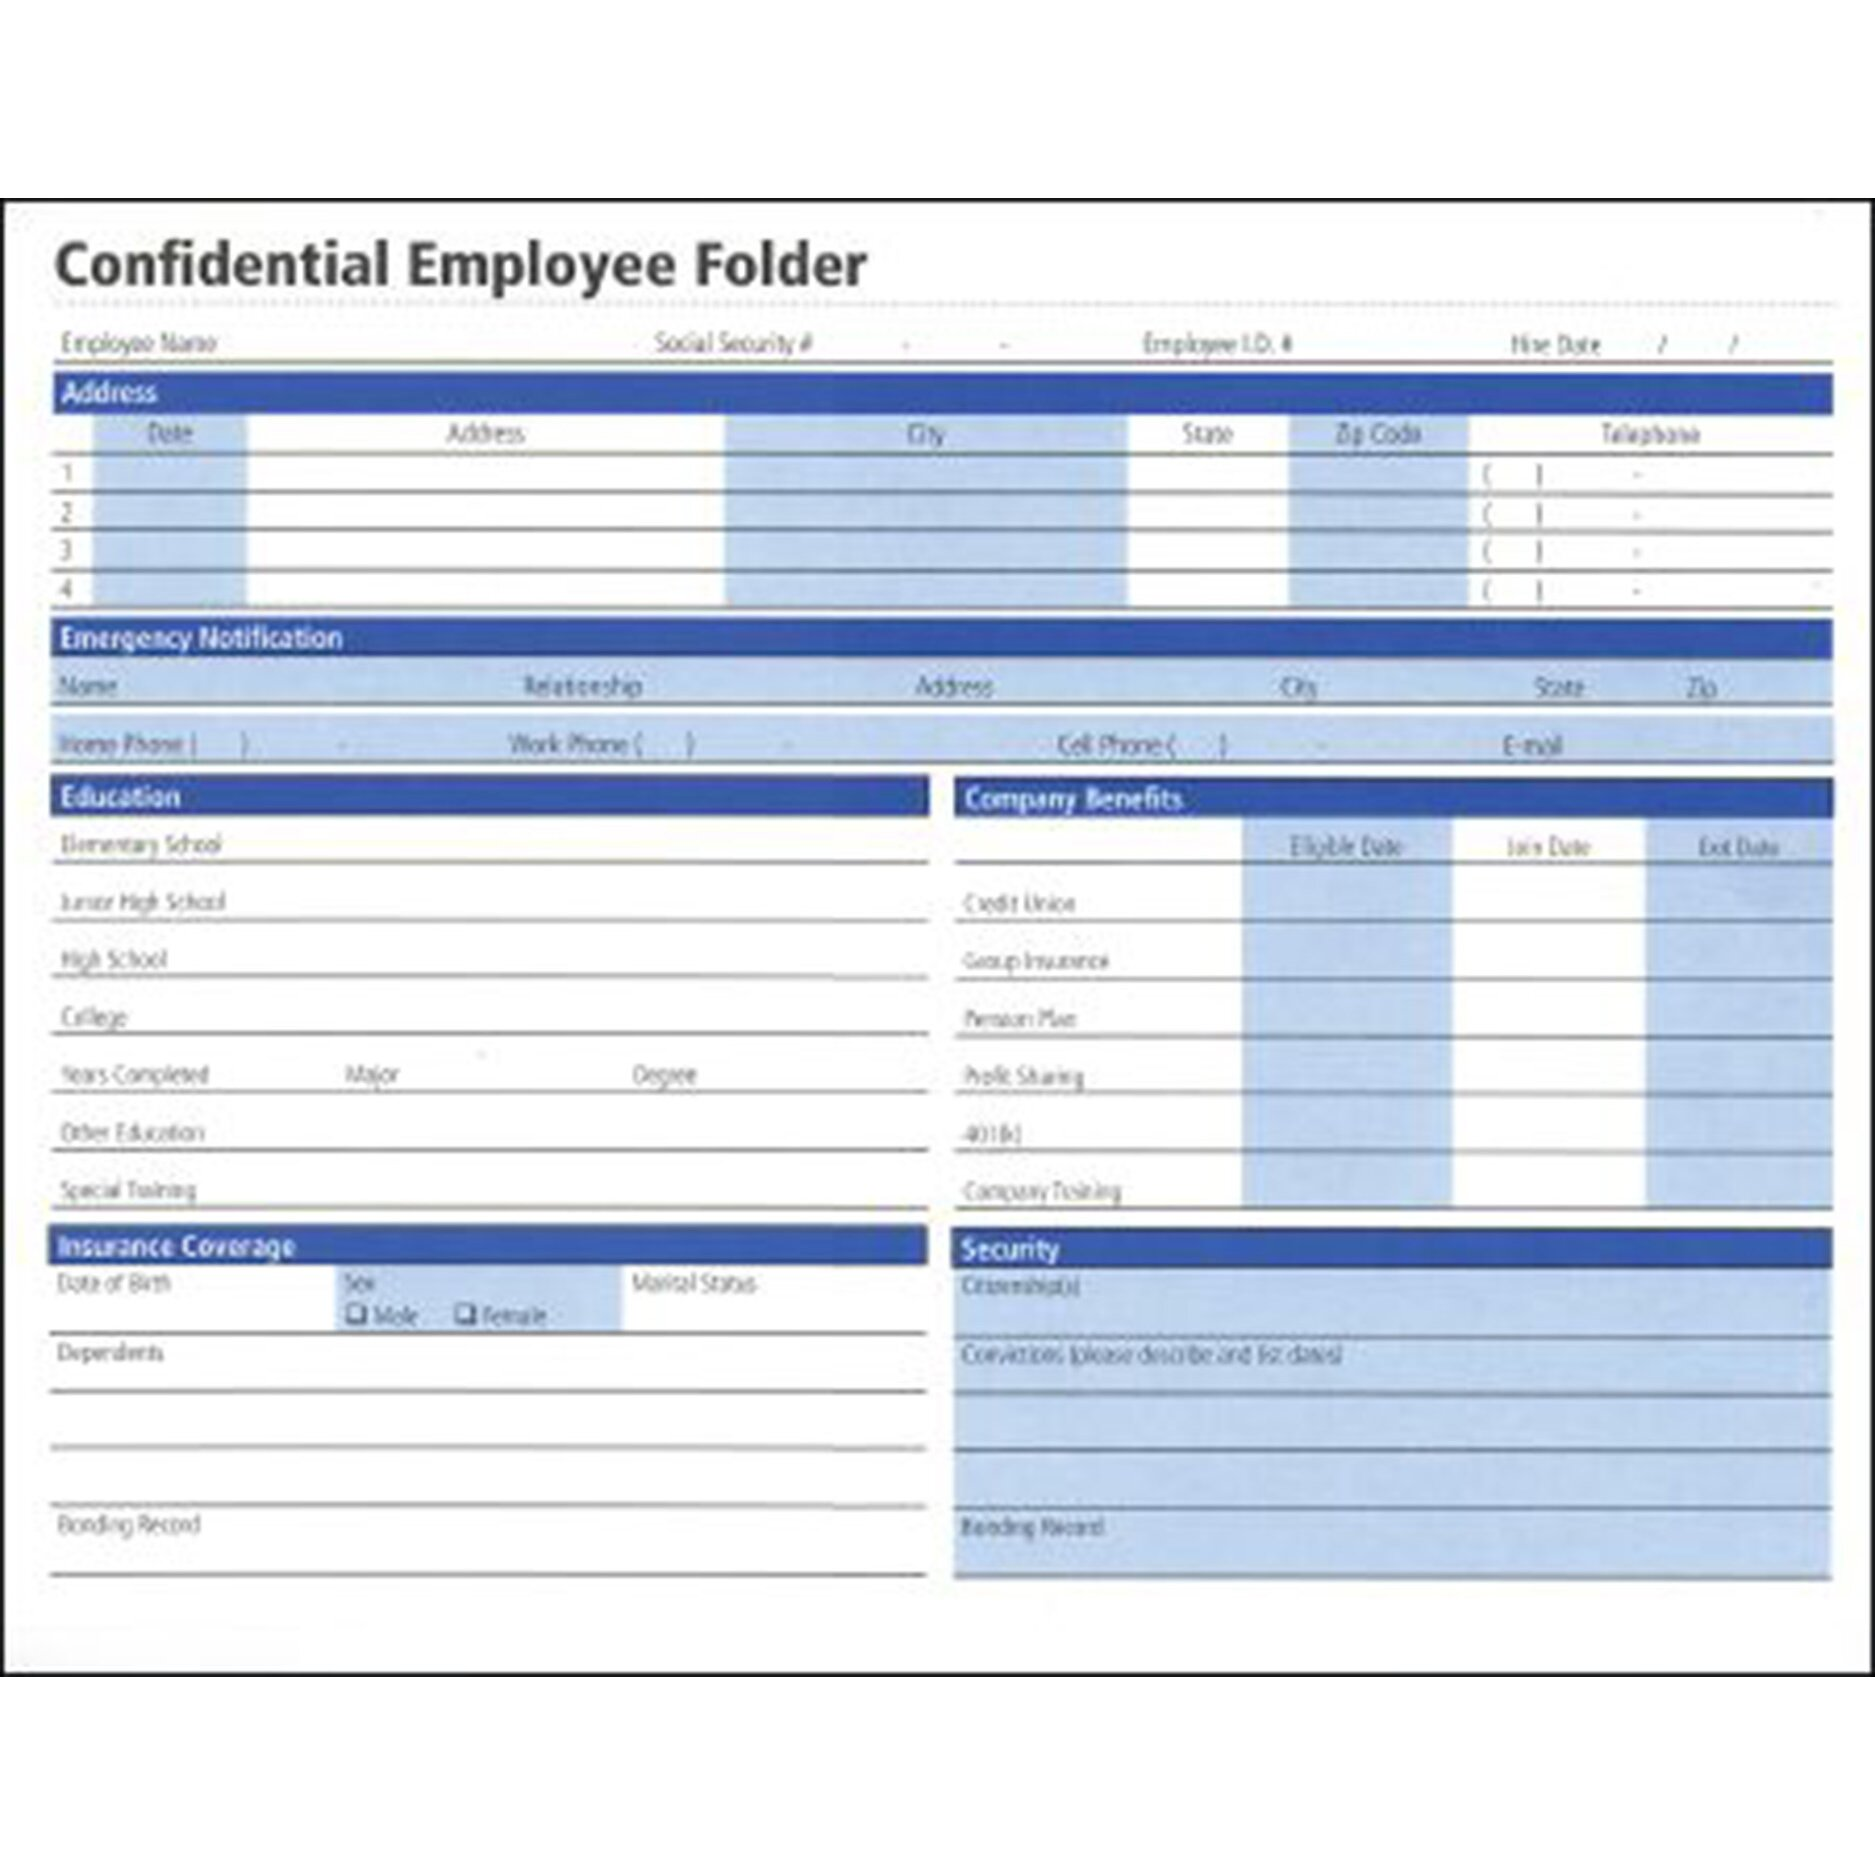 Confidential Employee Folder